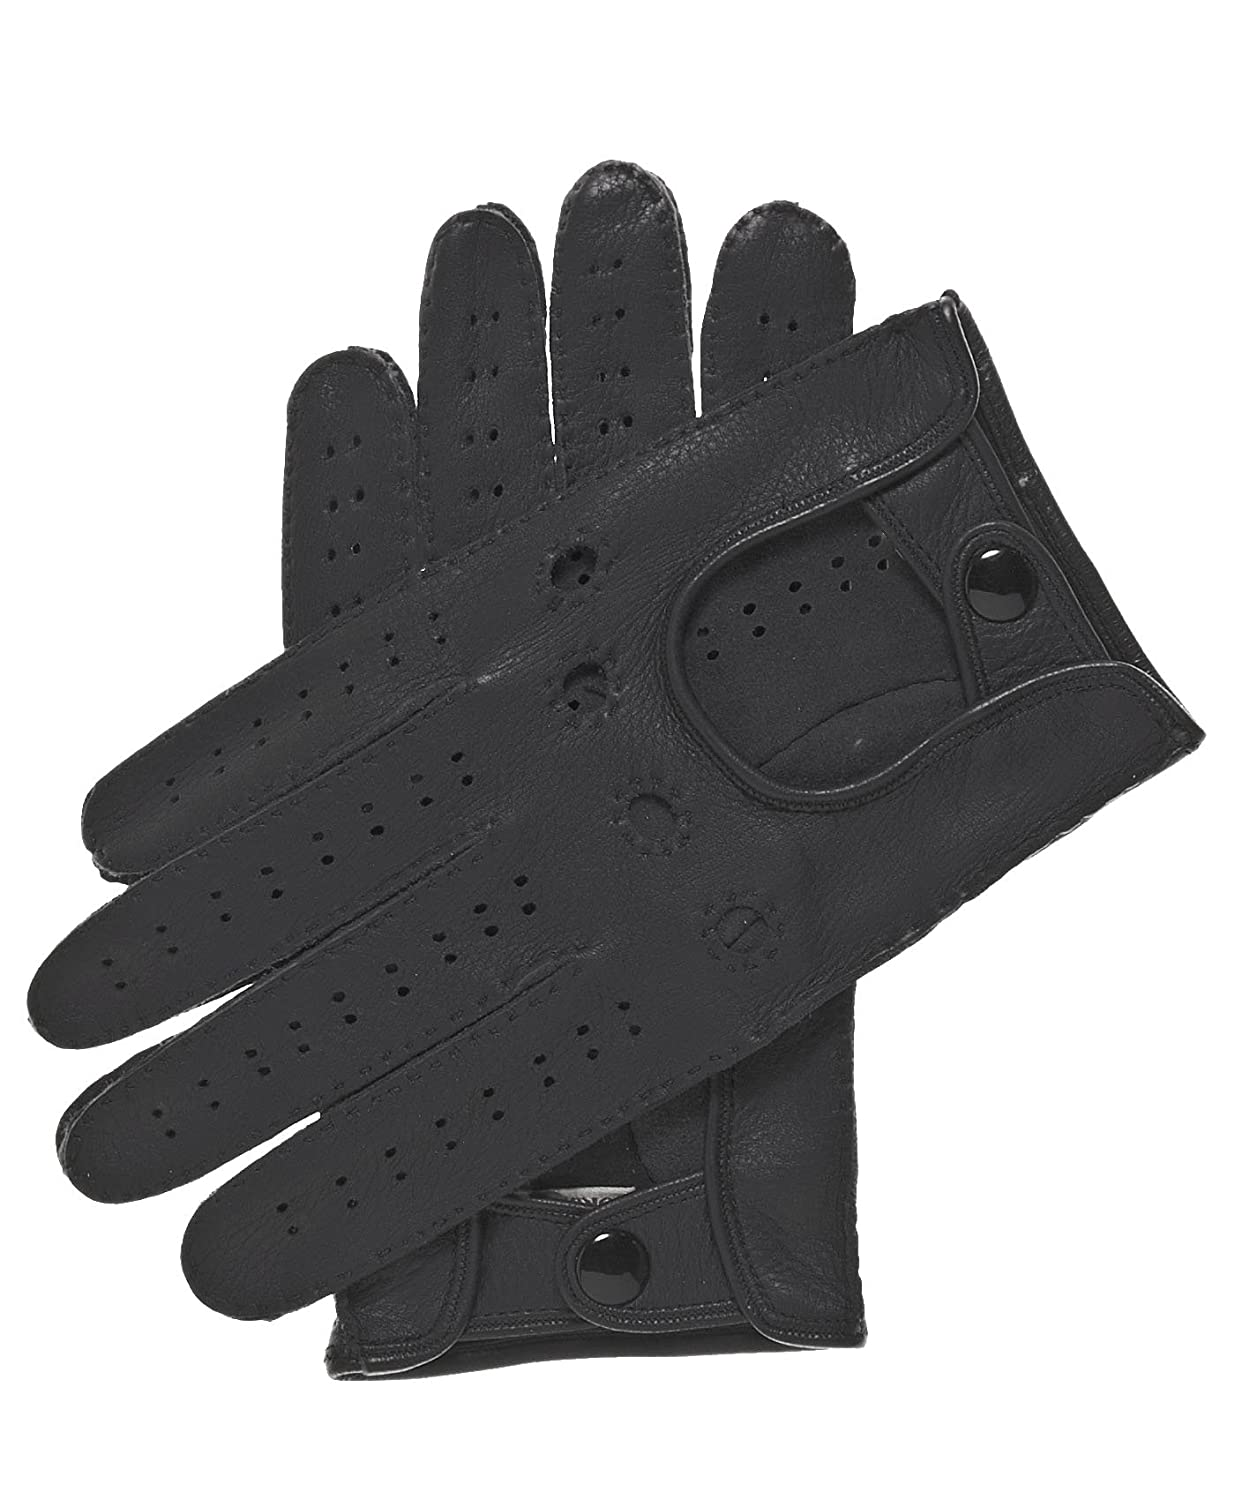 Driving gloves canadian tire - Fratelli Orsini Men S Handsewn Deerskin Driving Gloves Size 7 Color Black At Amazon Men S Clothing Store Cold Weather Gloves